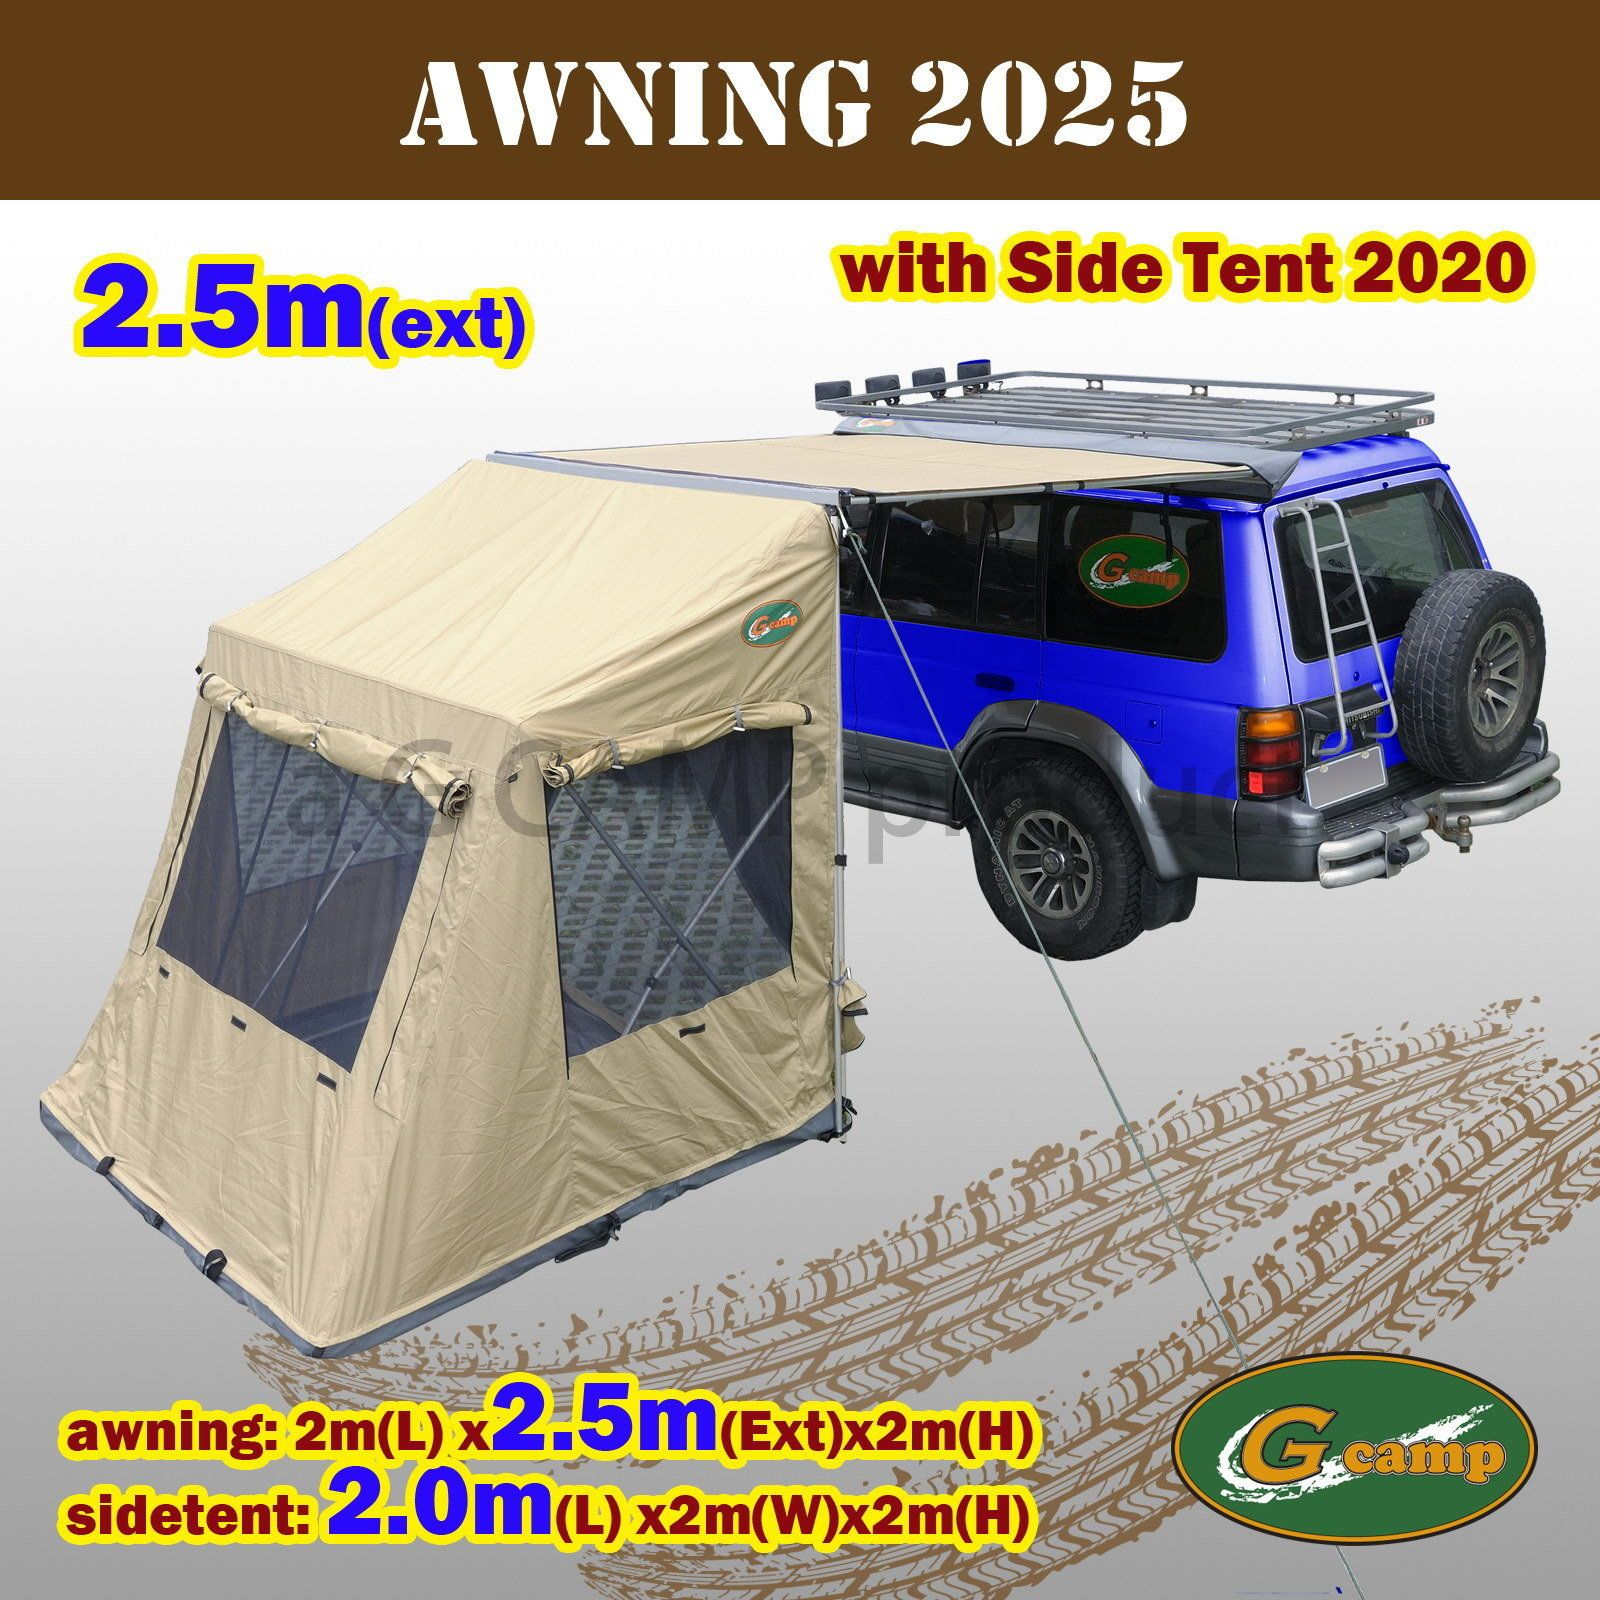 4Wd Awning Tent g camp 2025 awning pop up side tent roof top camper trailer